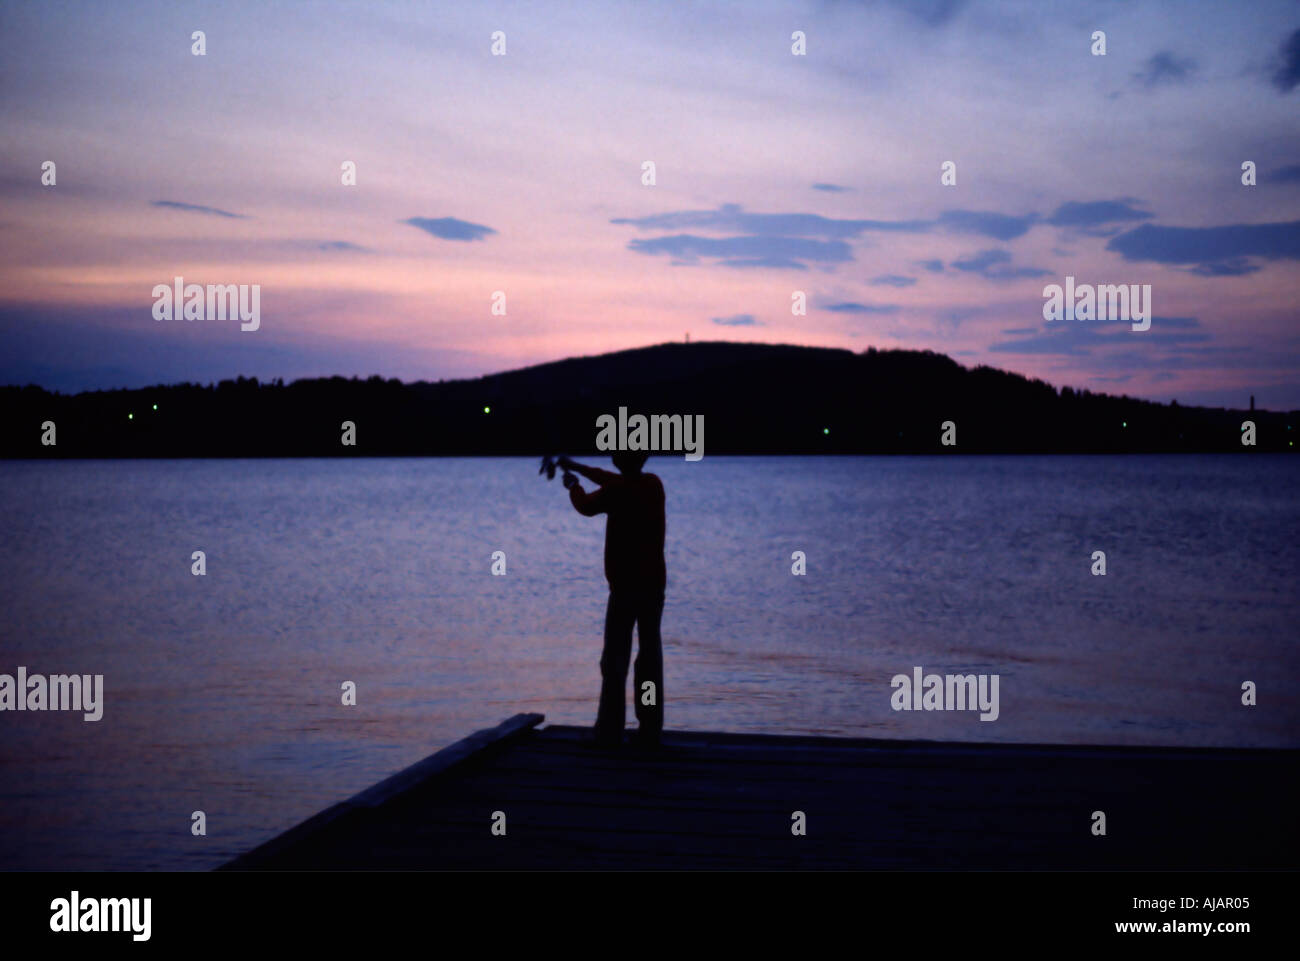 sweden ostersund midnight sun fishing in the lake at midnight - Stock Image